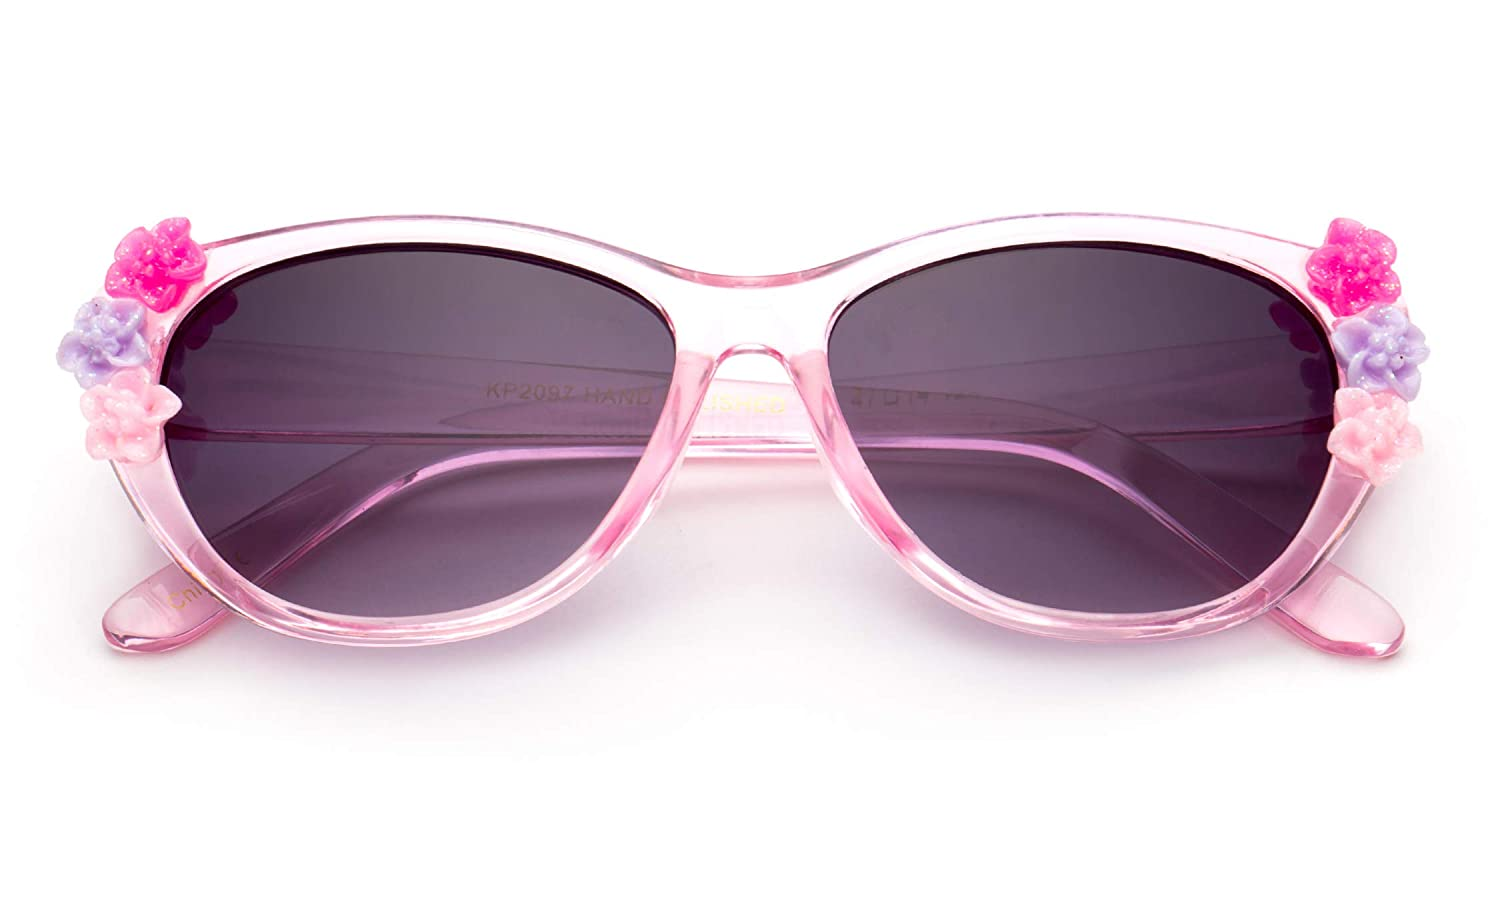 Kids Girls Toddlers Fashion Sunglasses Cateye Cute Sunglasses with Flowers UV Protection w//Pouch Newbee Fashion 0-5 YRS